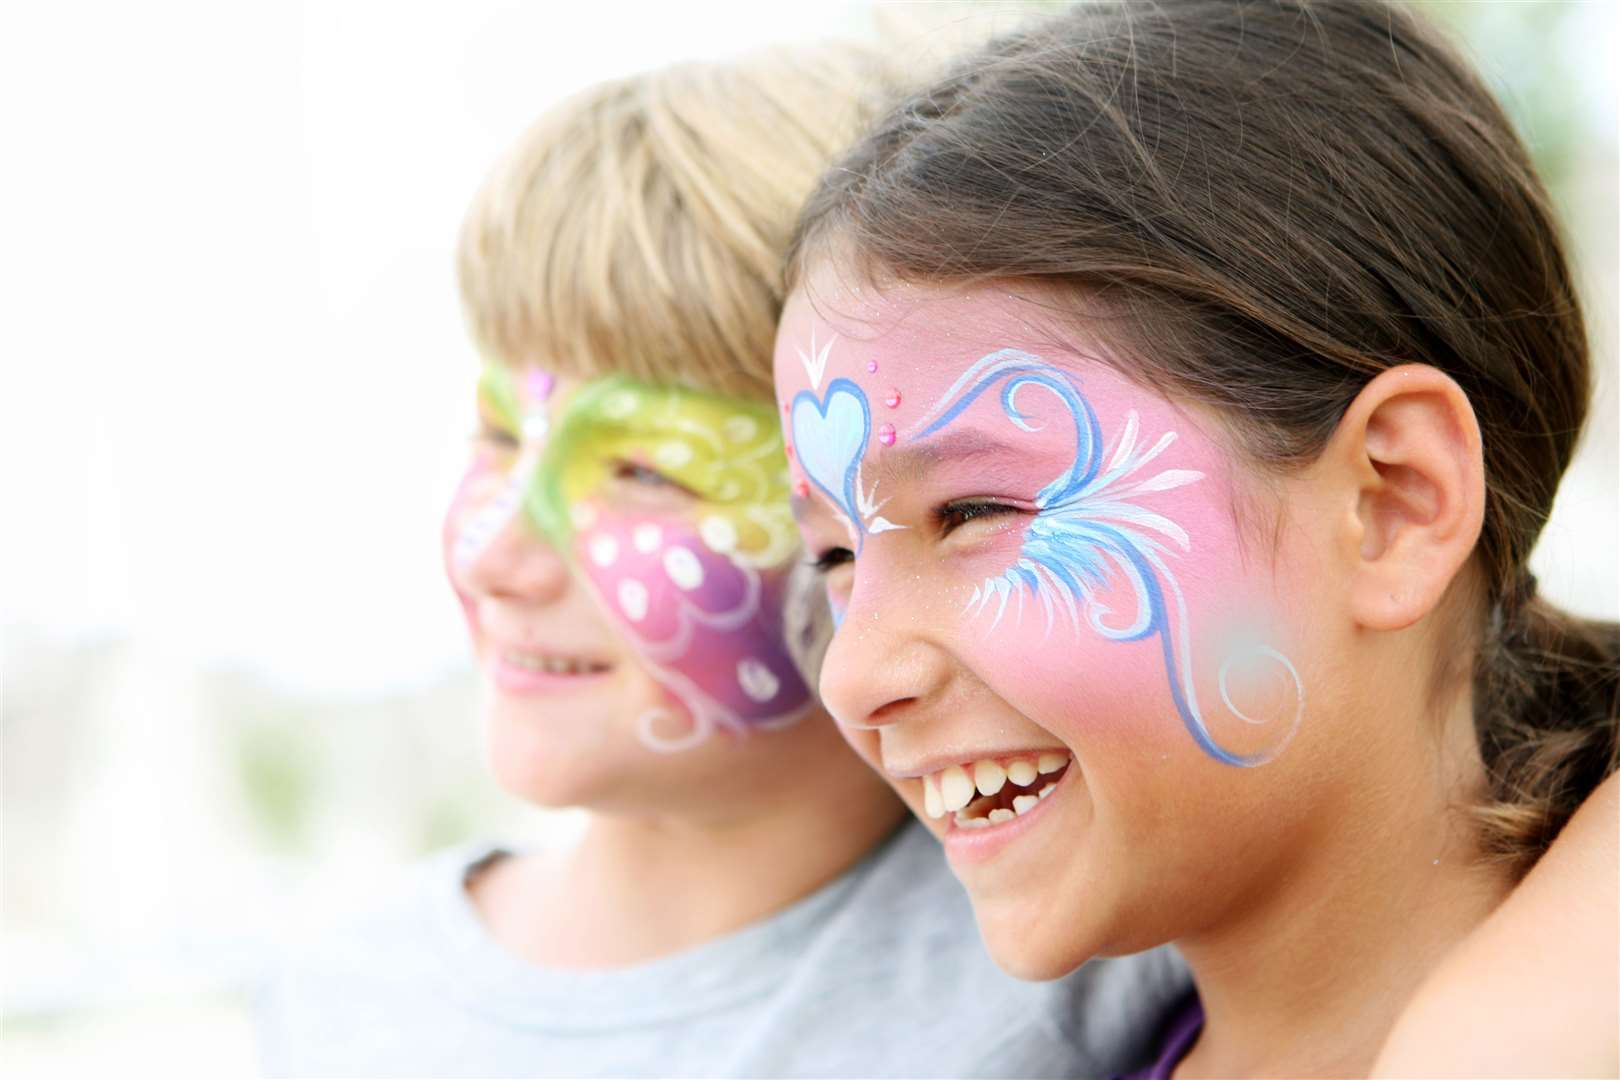 Face painted kids. (12301565)